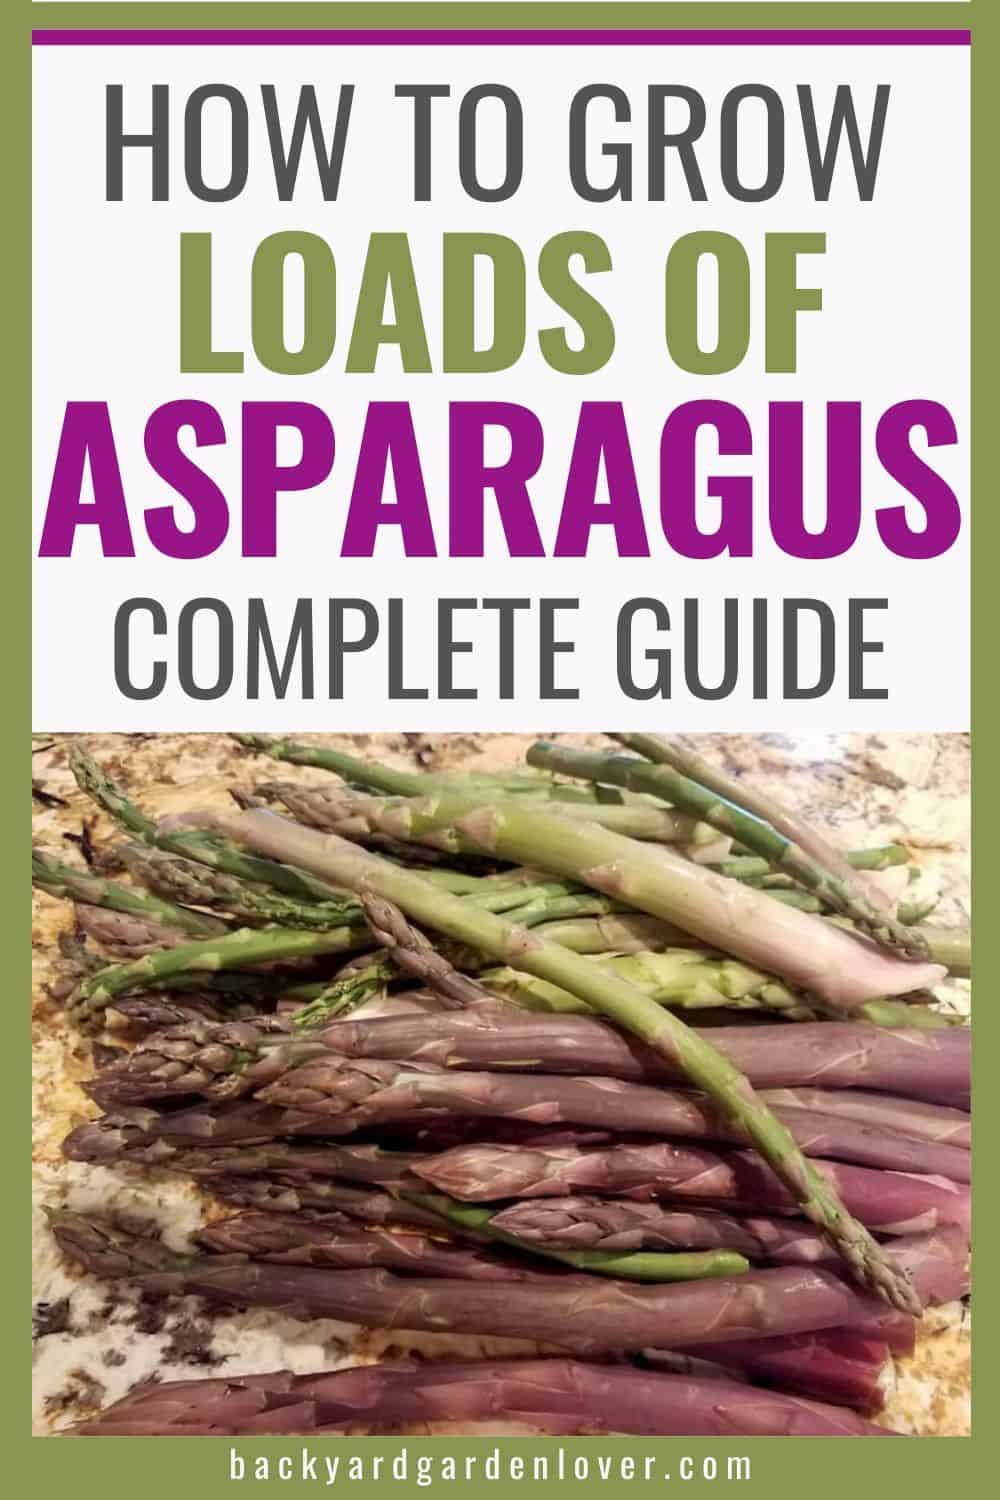 Complete guide to growing asparagus - Pinterest image